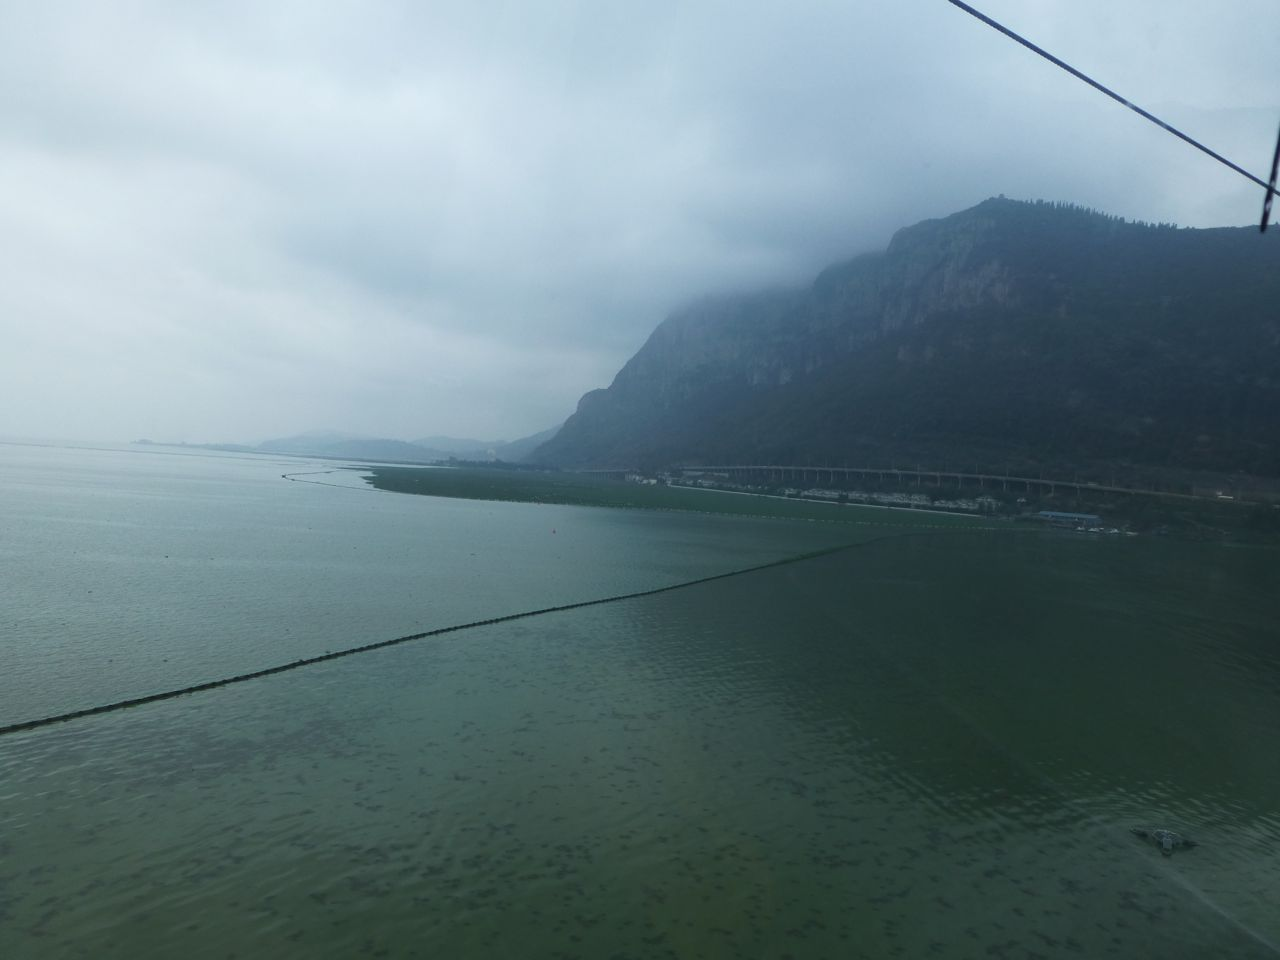 Crossing Dian Lake in a cable car